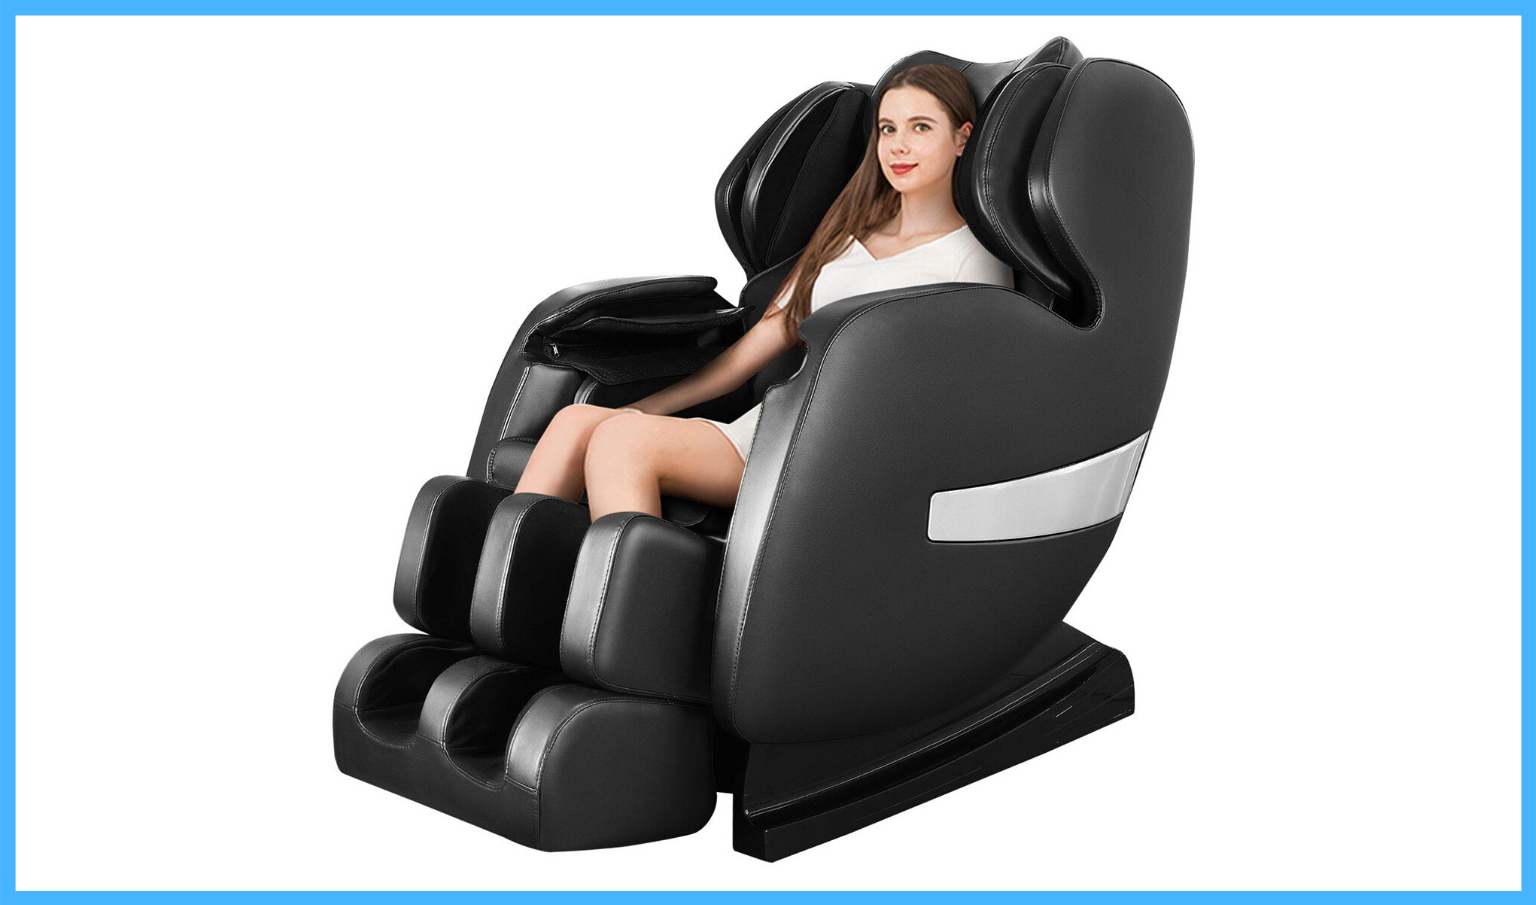 Best Massage Chair Under 1500